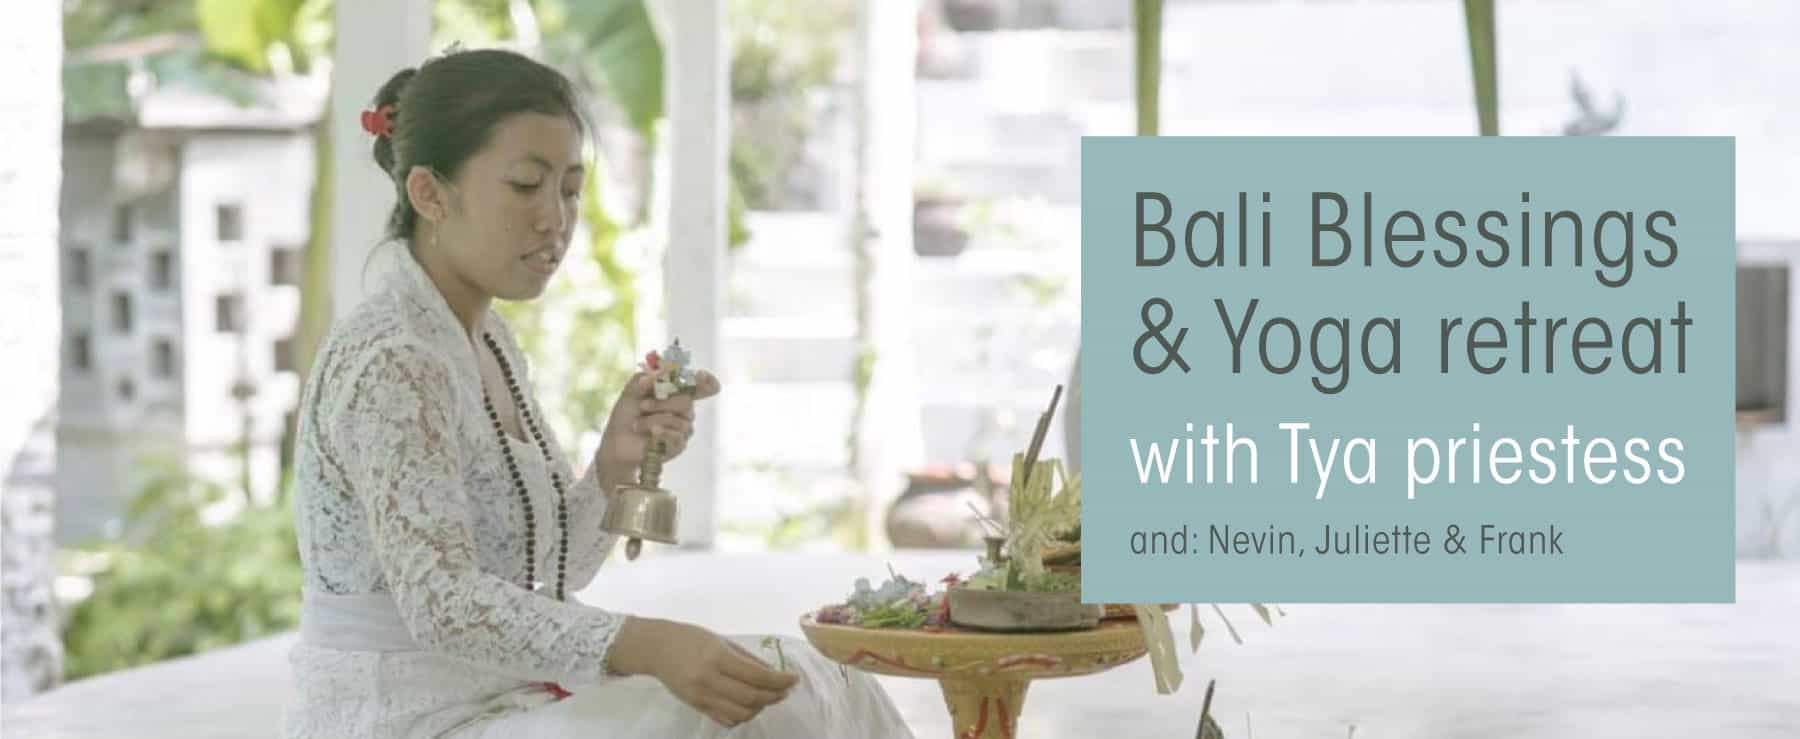 Bali Blessings & Yoga retreat with Tya priestess